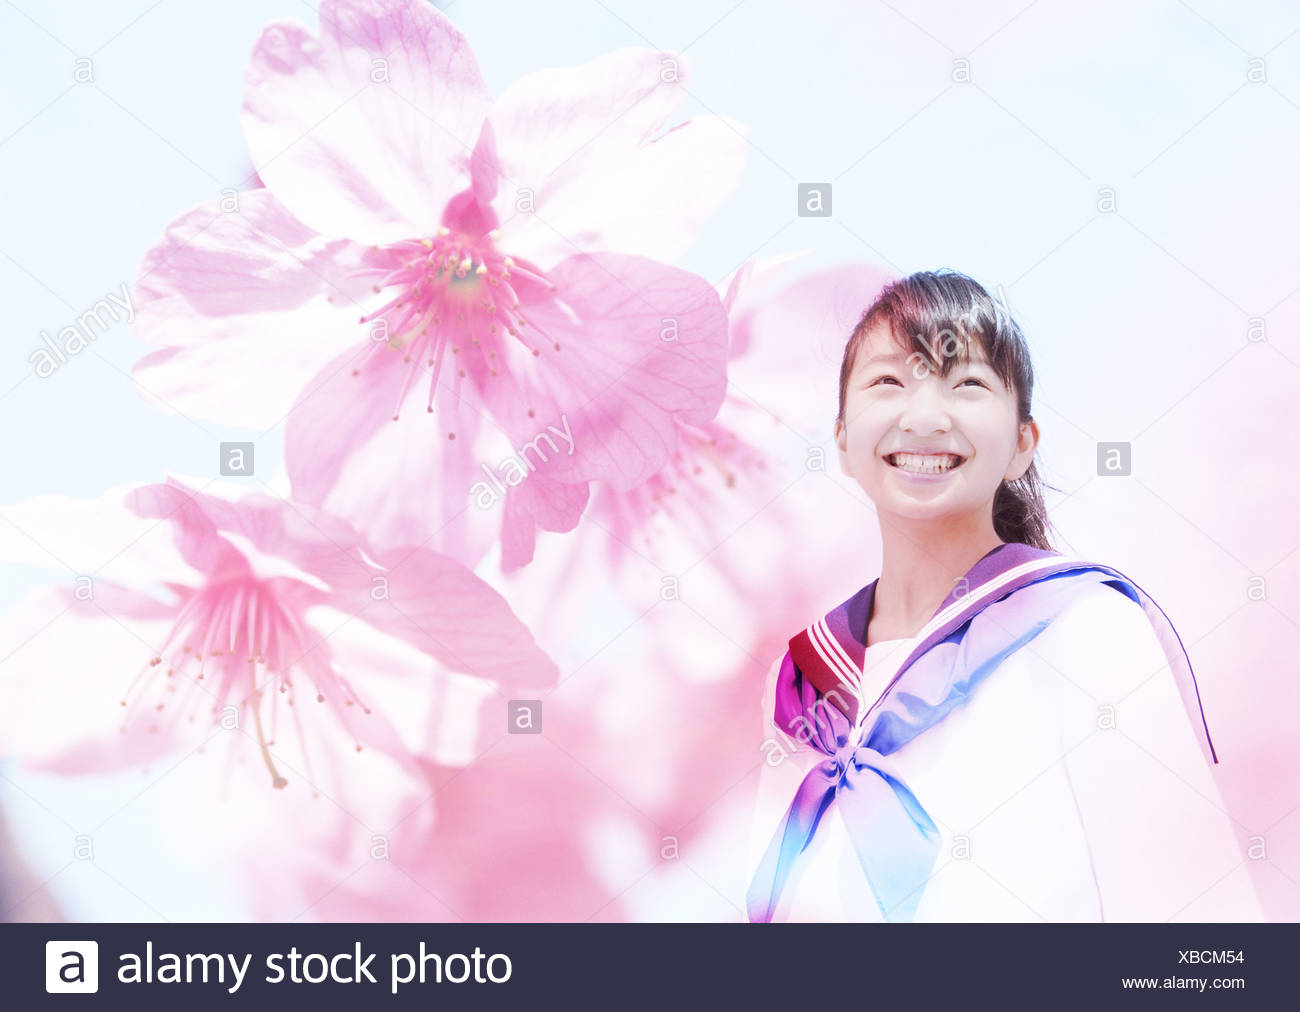 Junior high school girl and cherry blossoms - Stock Image